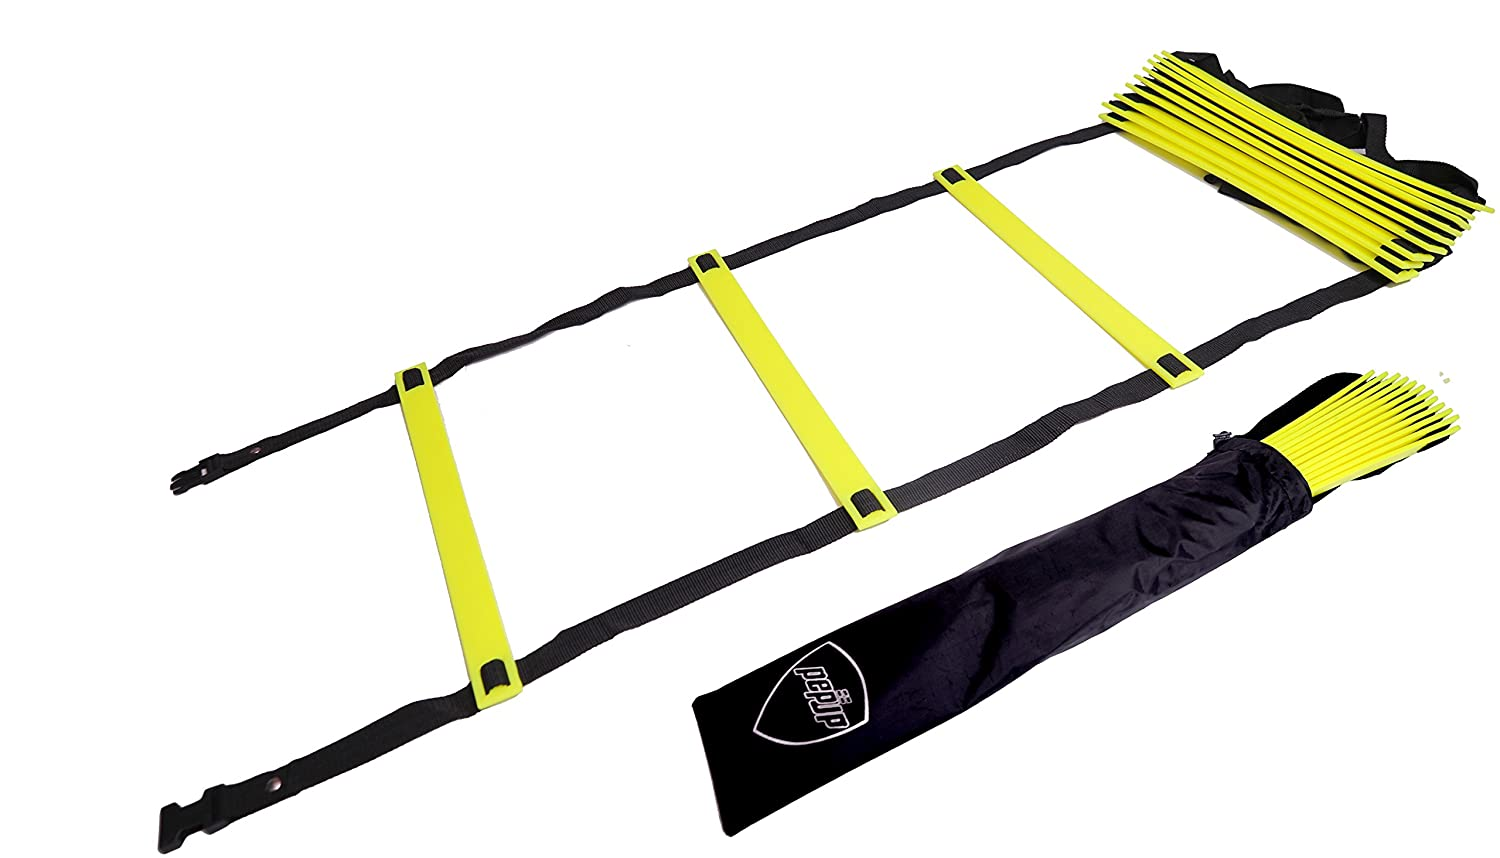 Pepup Sports Super Flat Adjustable Speed Agility Ladder with Free Carry Bag